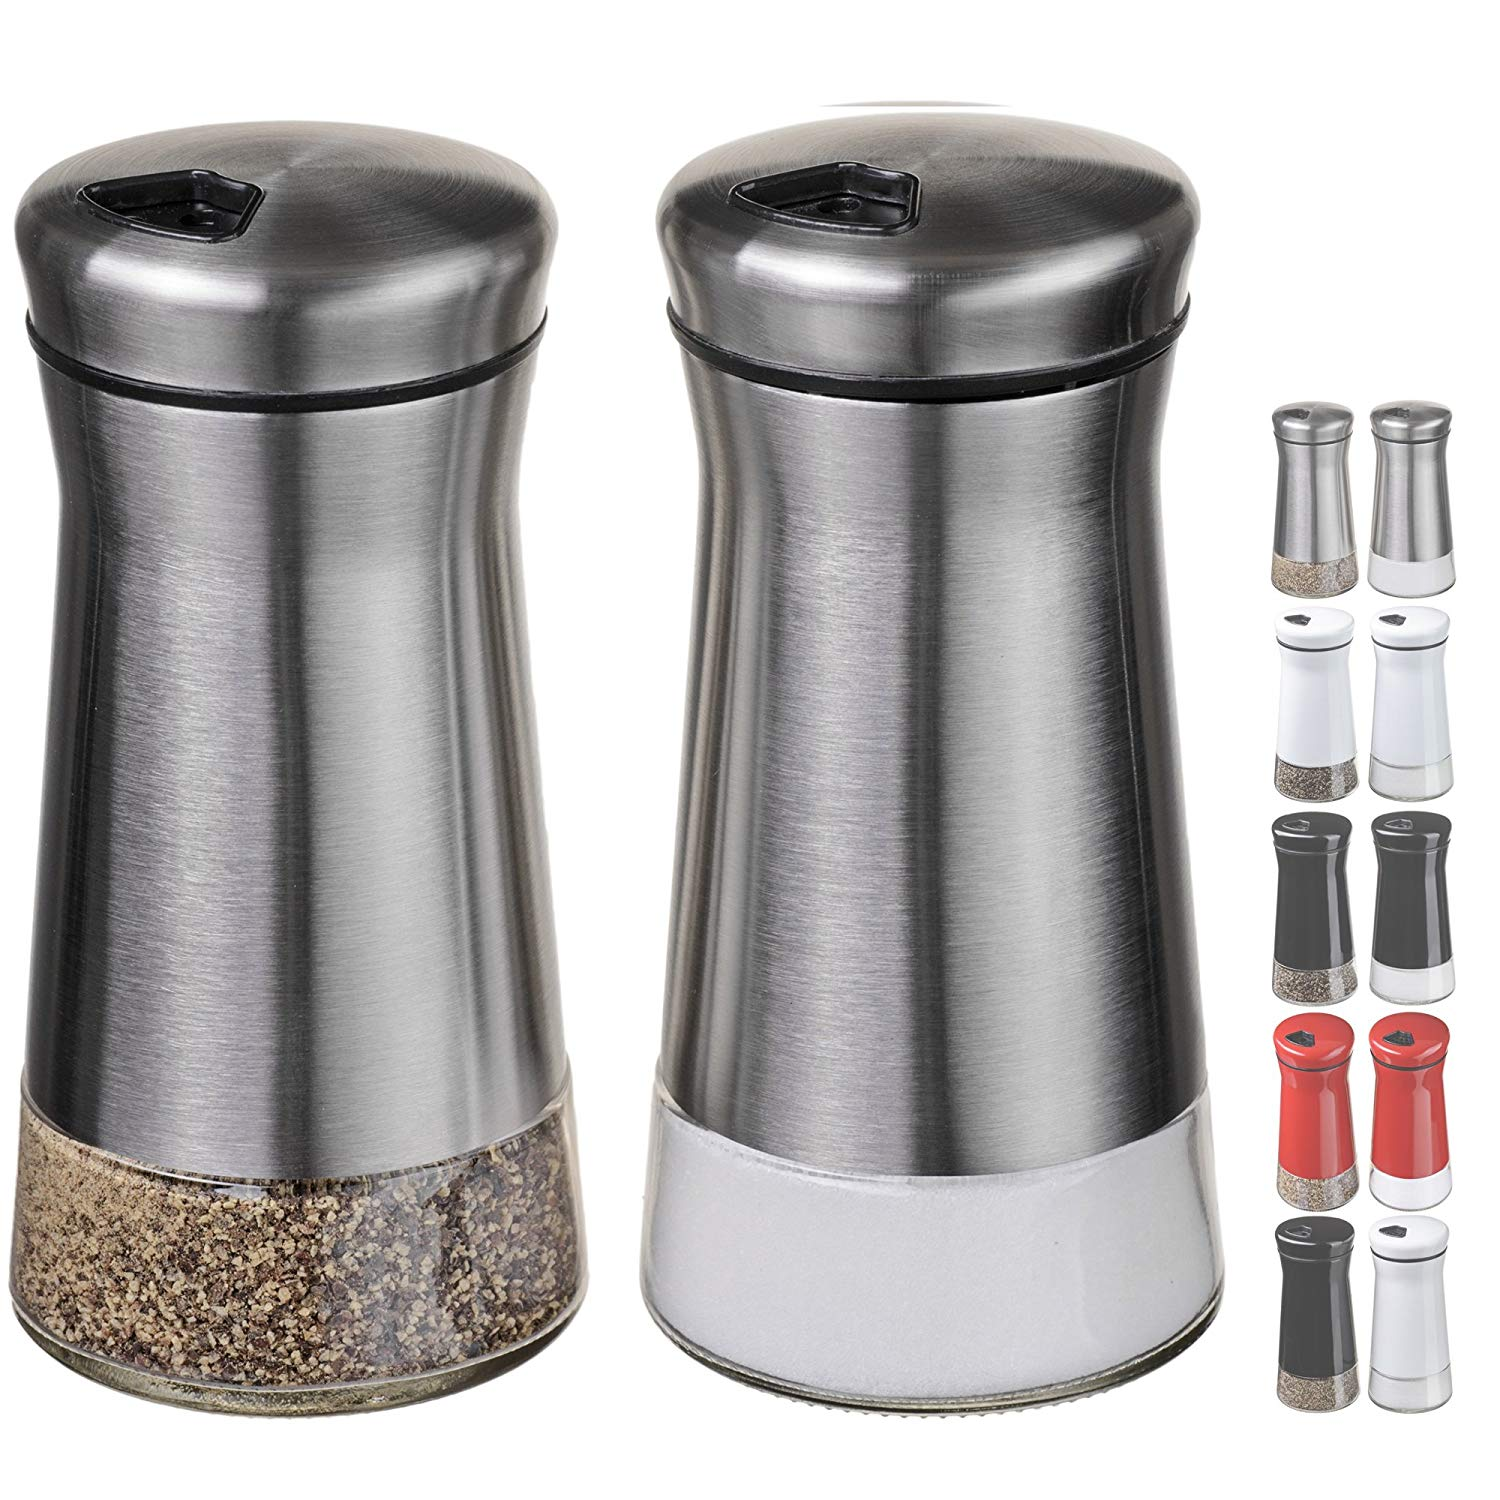 Amazon.com: CHEFVANTAGE Salt and Pepper Shakers Set with Adjustable ...